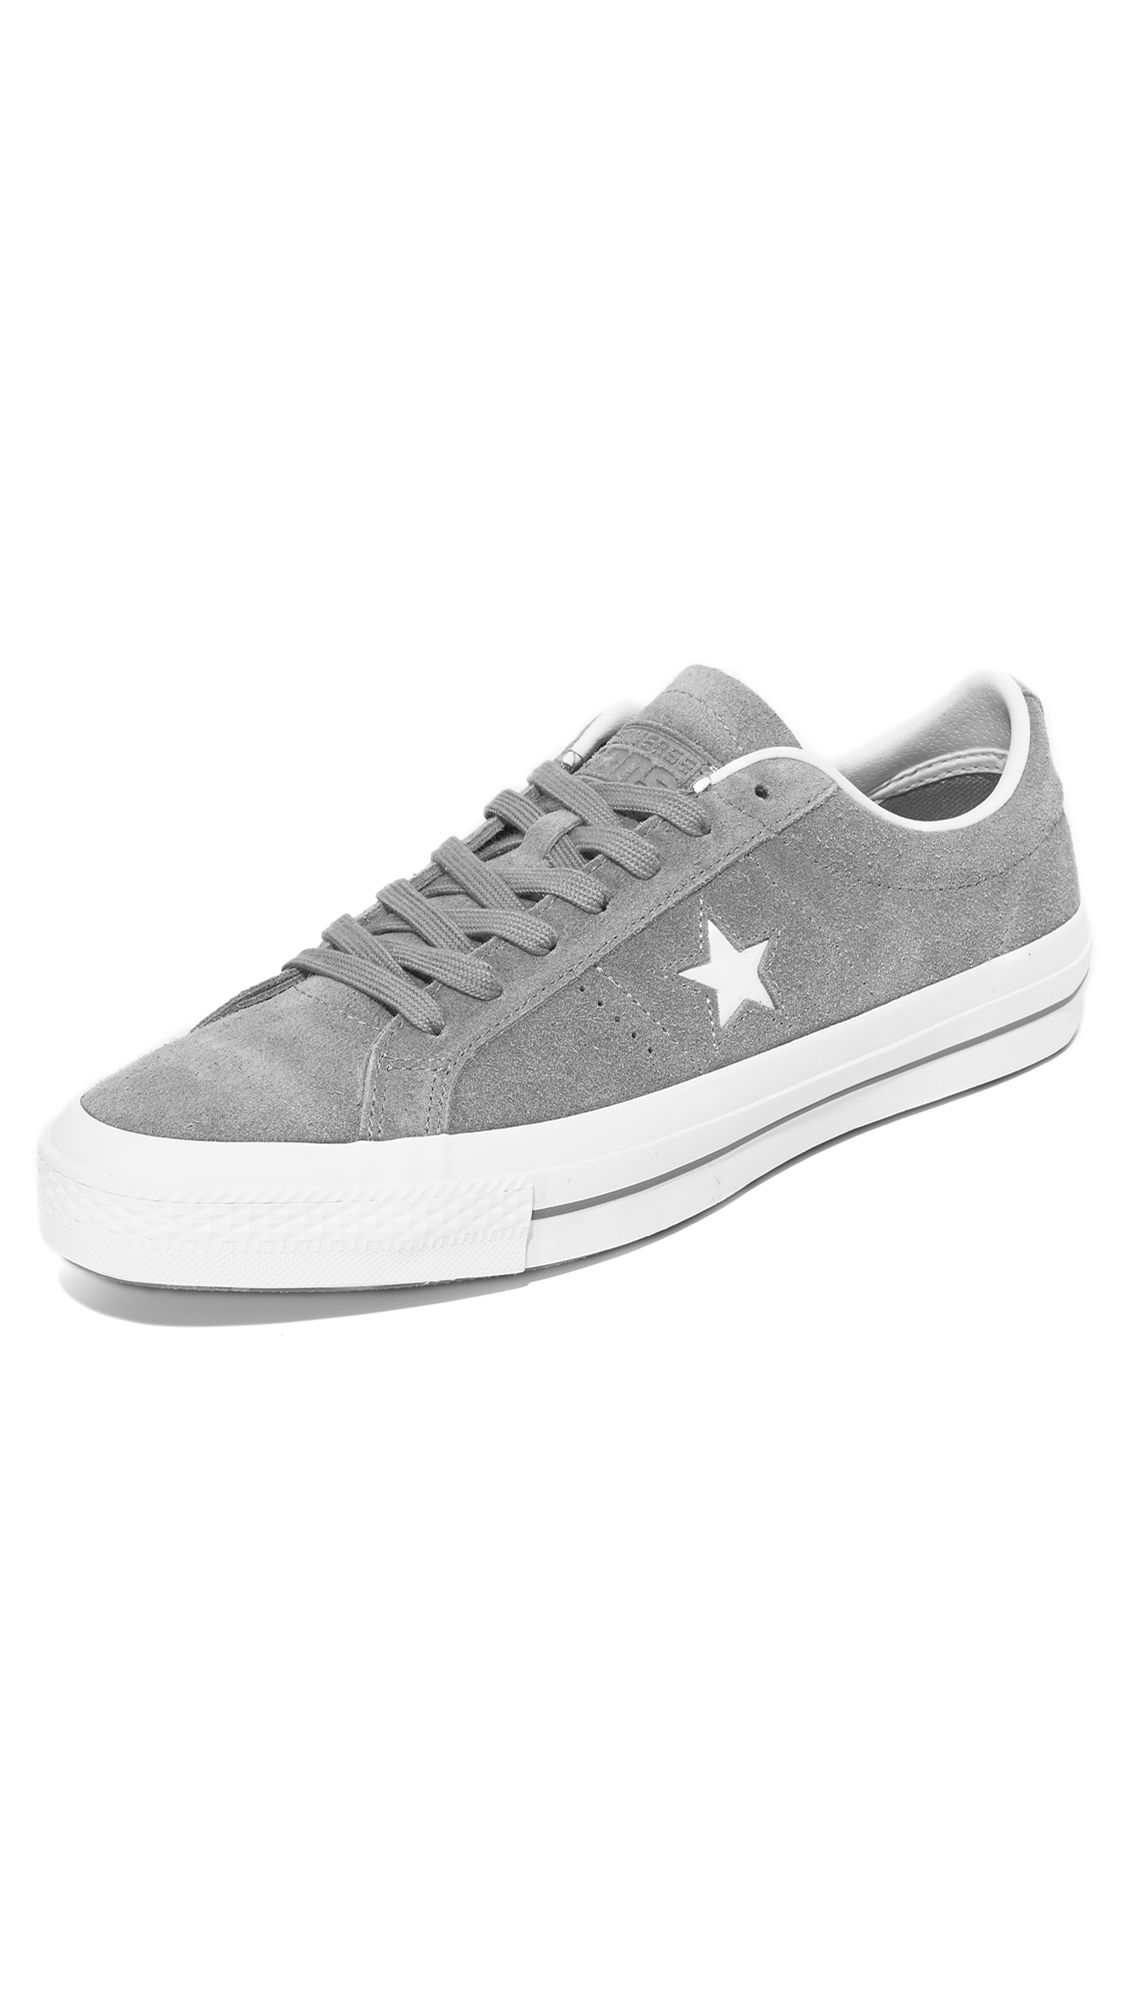 7578412354ed CONVERSE One Star Suede Sneakers.  converse  shoes  sneakers ...